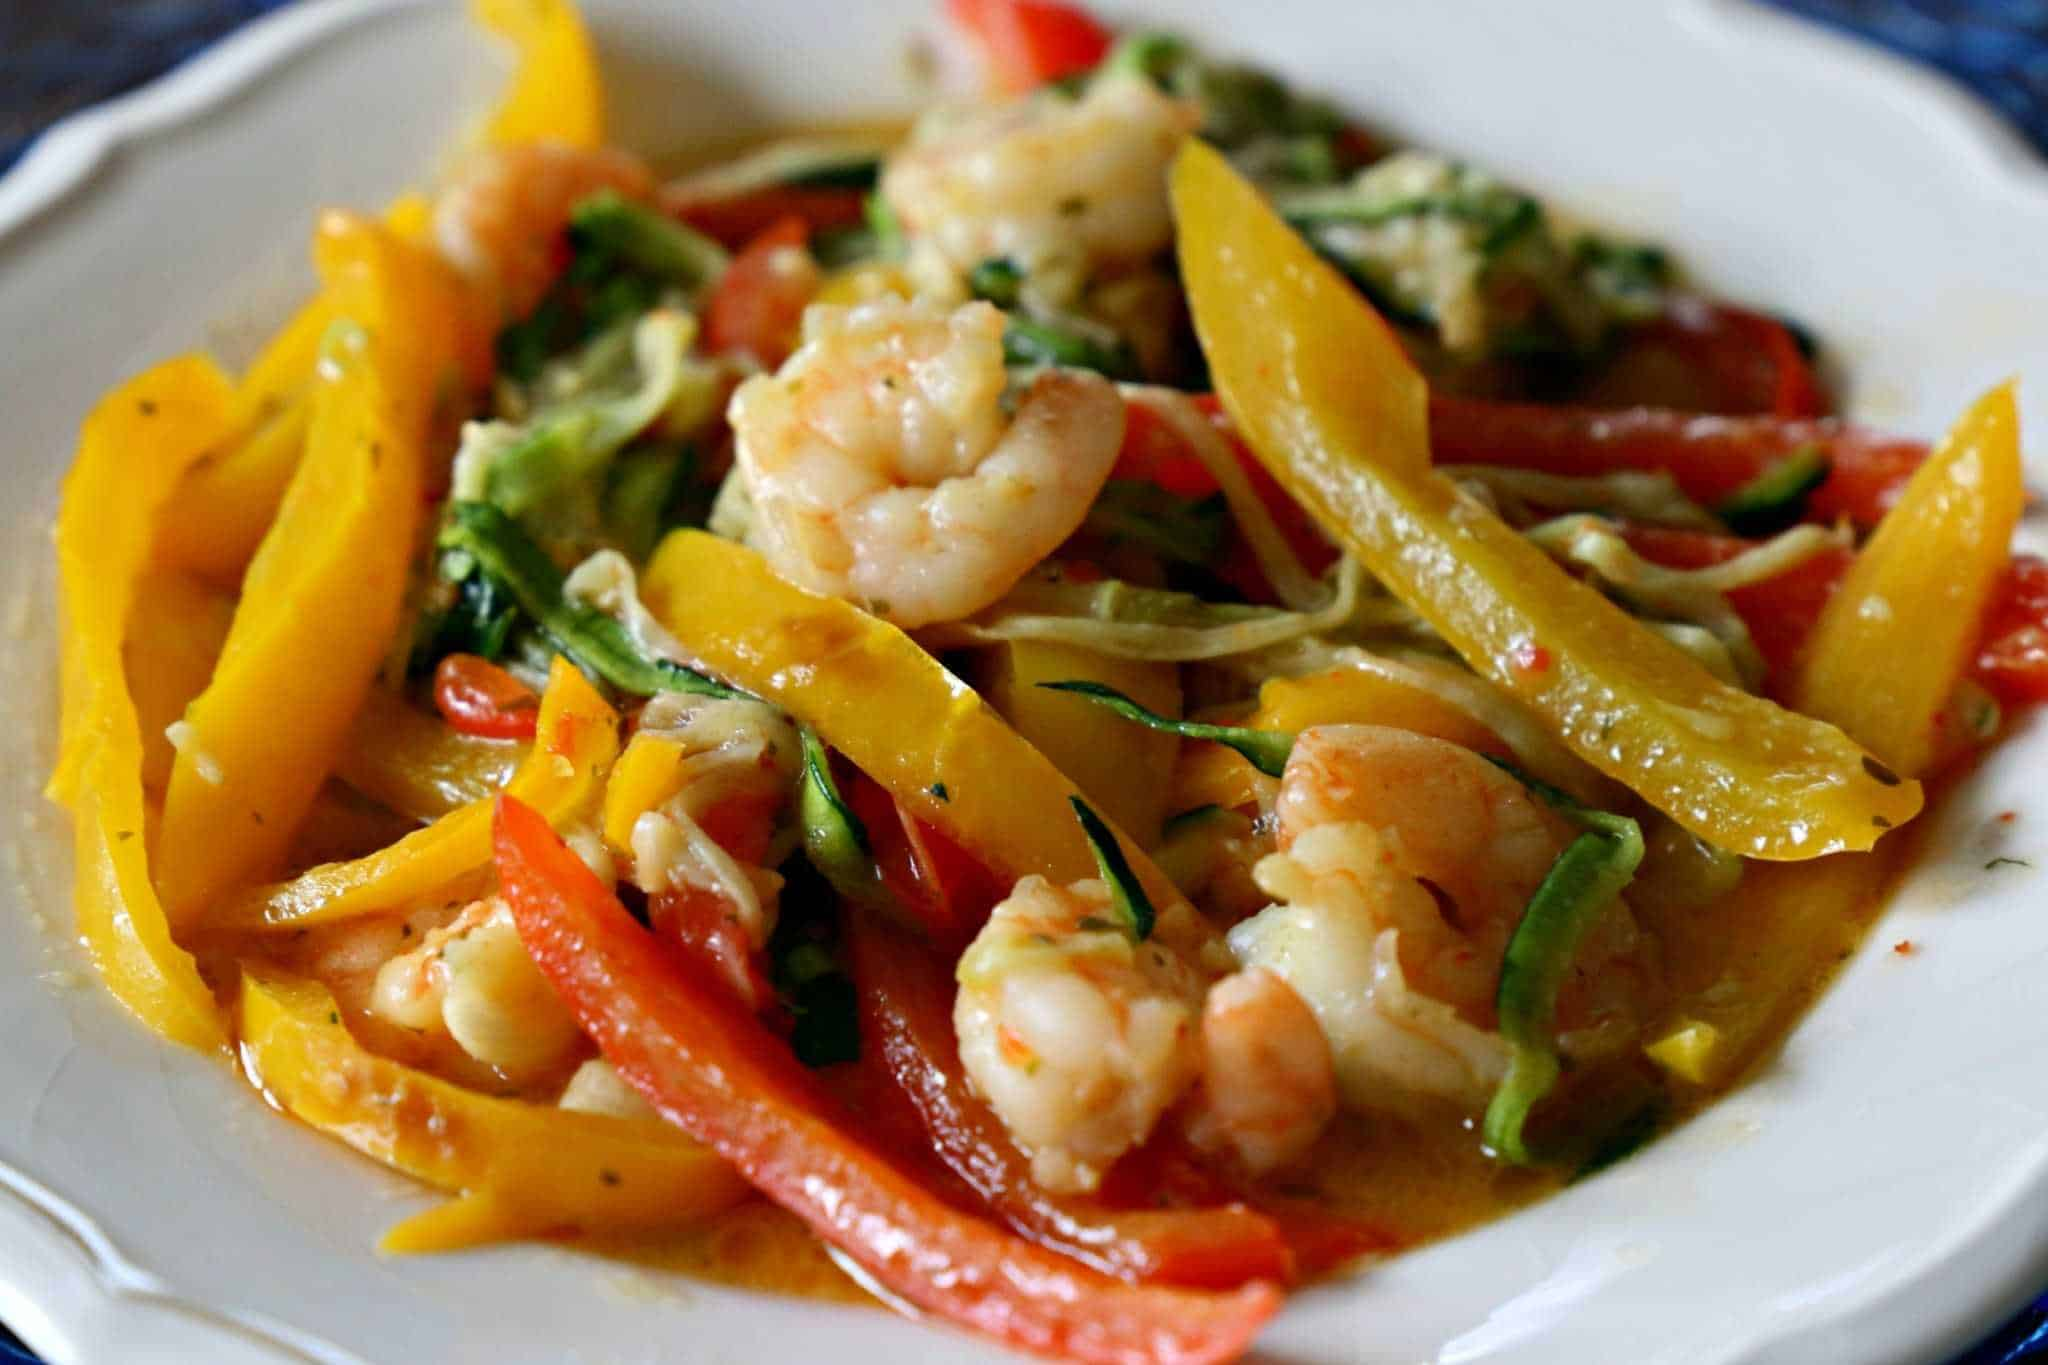 Low carb shrimp scampi with zucchini and peppers